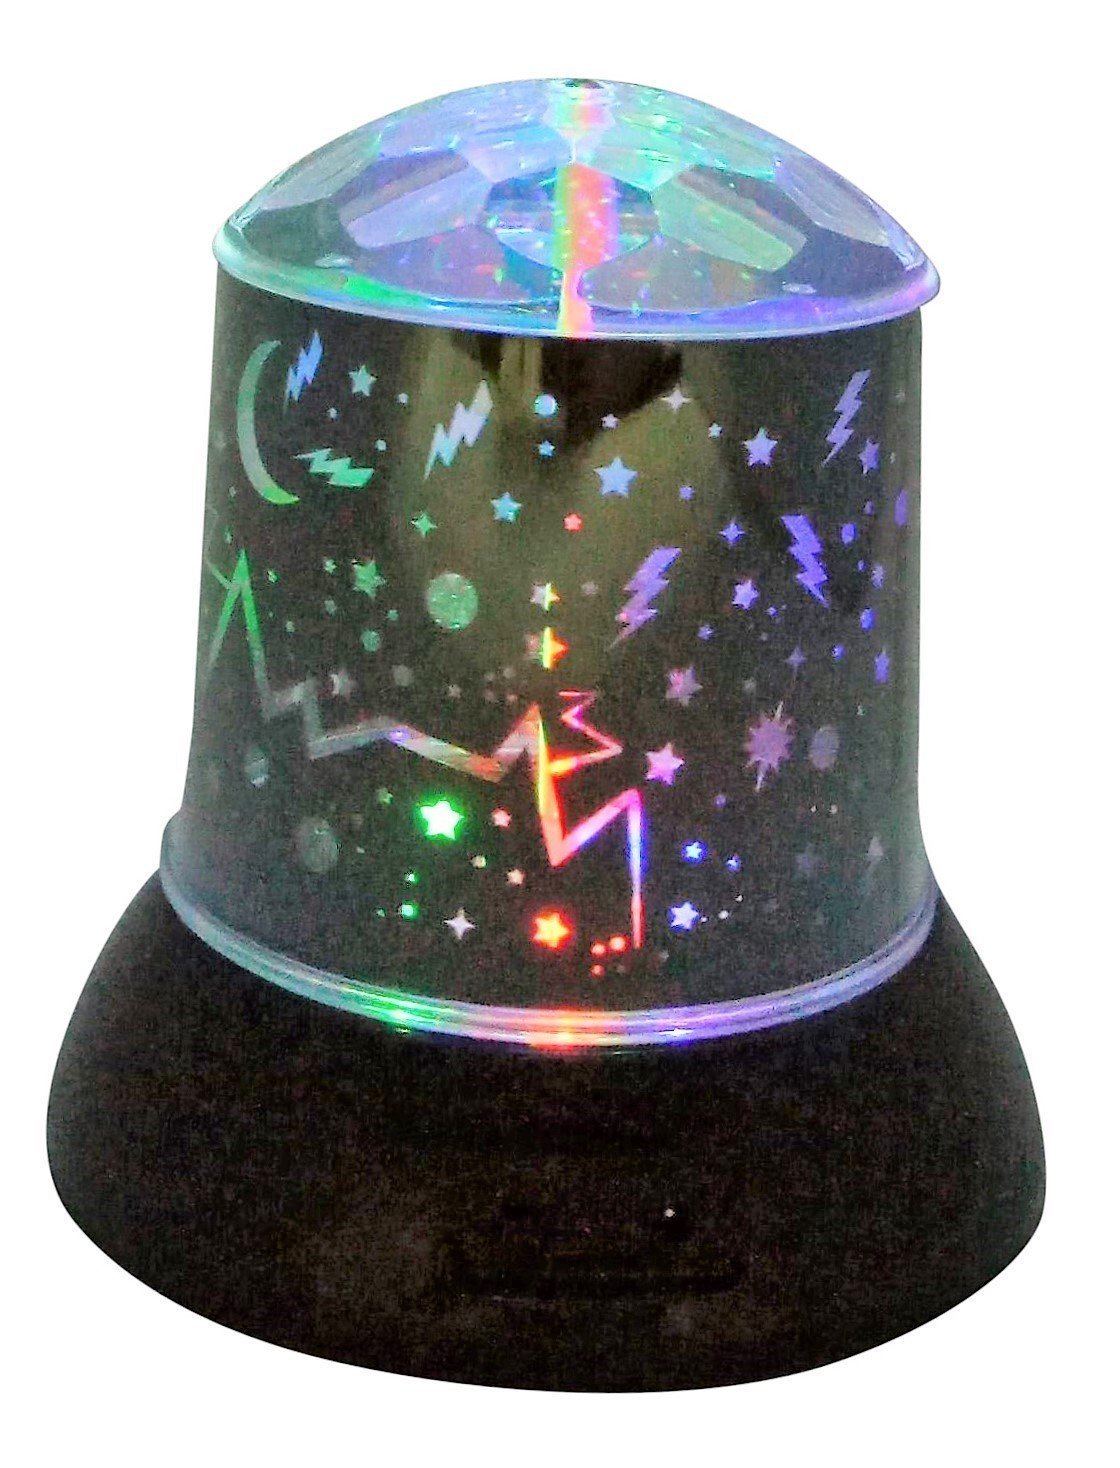 Lightahead LA-KDS-8108-1A Starlight Night Lighting Lamp Battery Operated LED Decorative Light with Different Patterns, LED Starry Night Sky Lamp